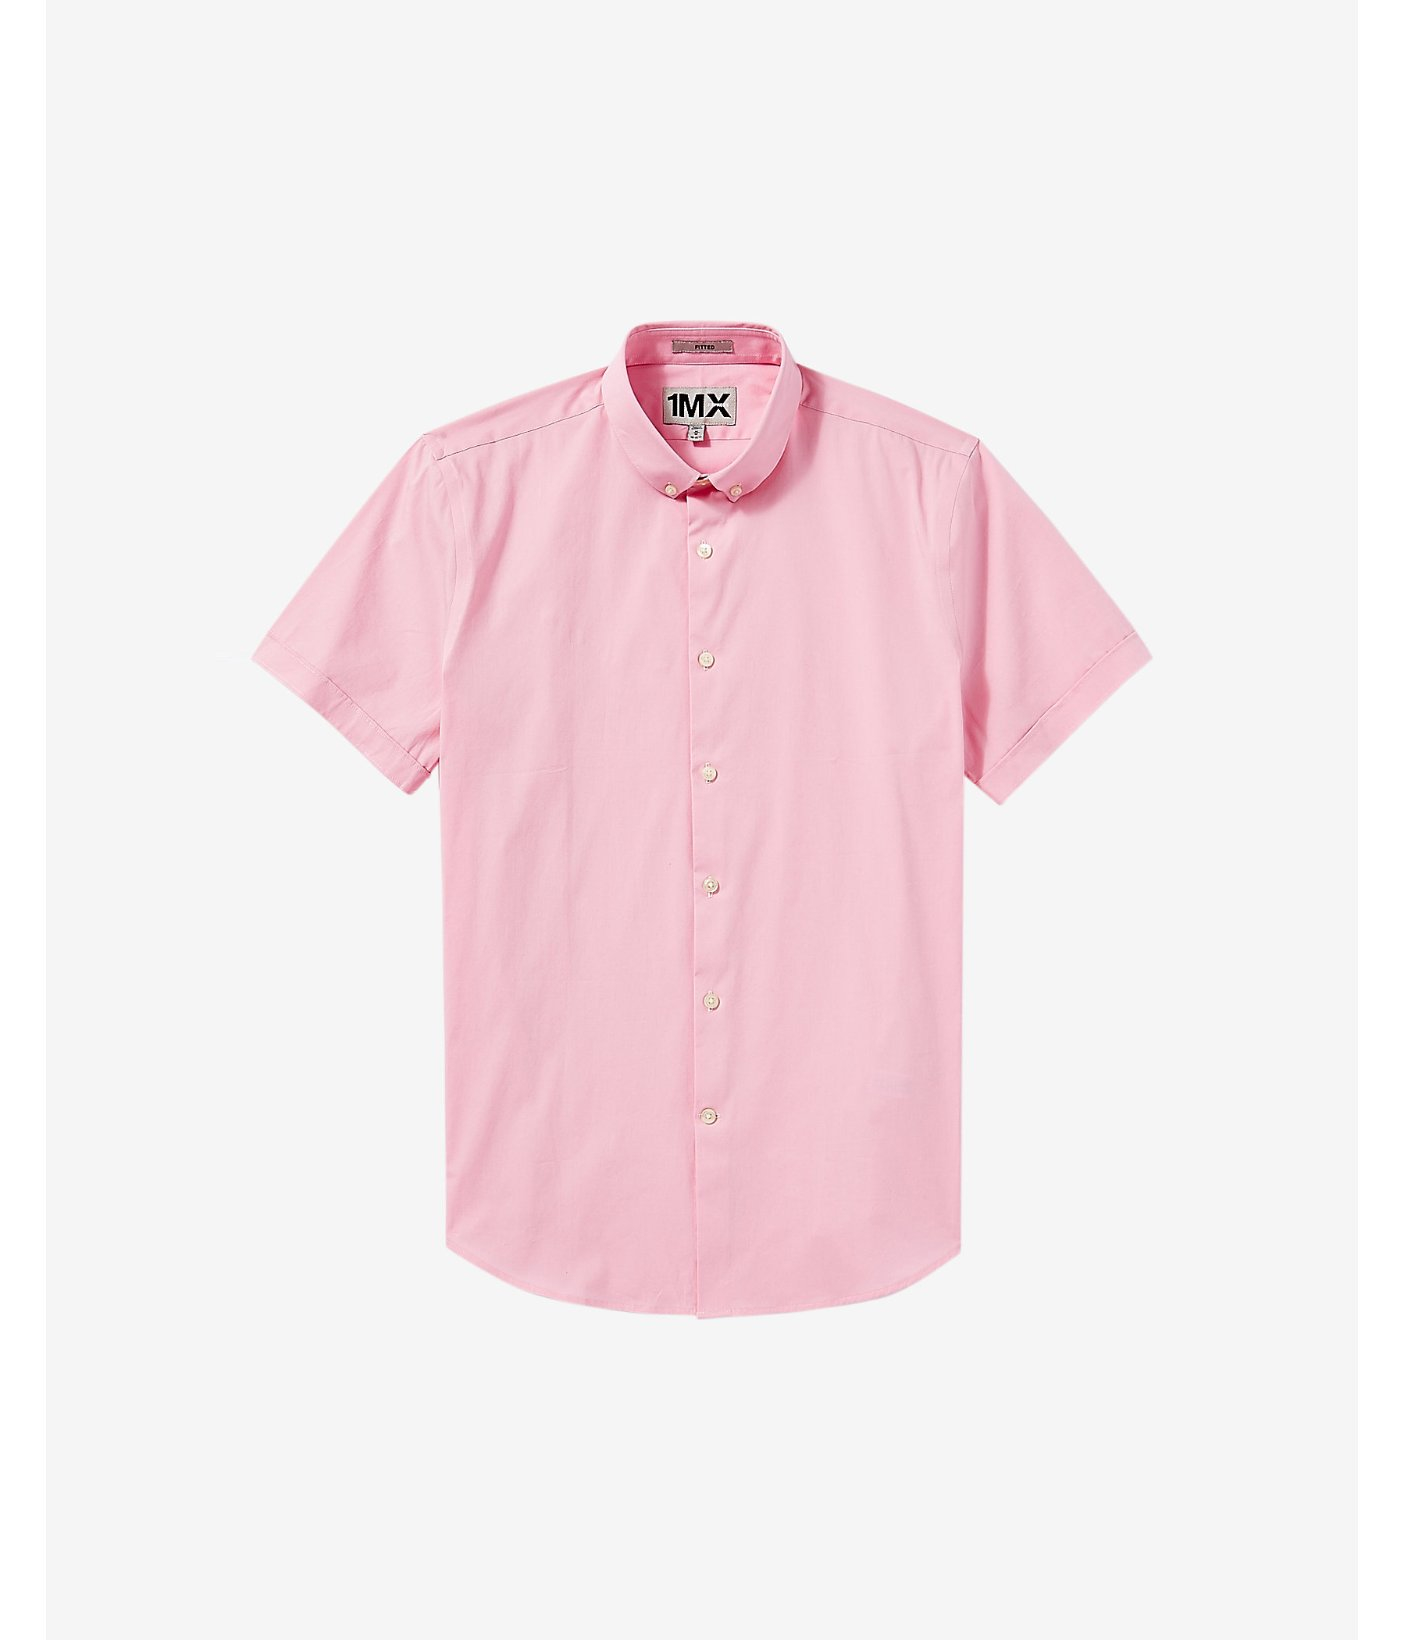 Express Fitted Short Sleeve 1mx Shirt In Pink For Men Lyst